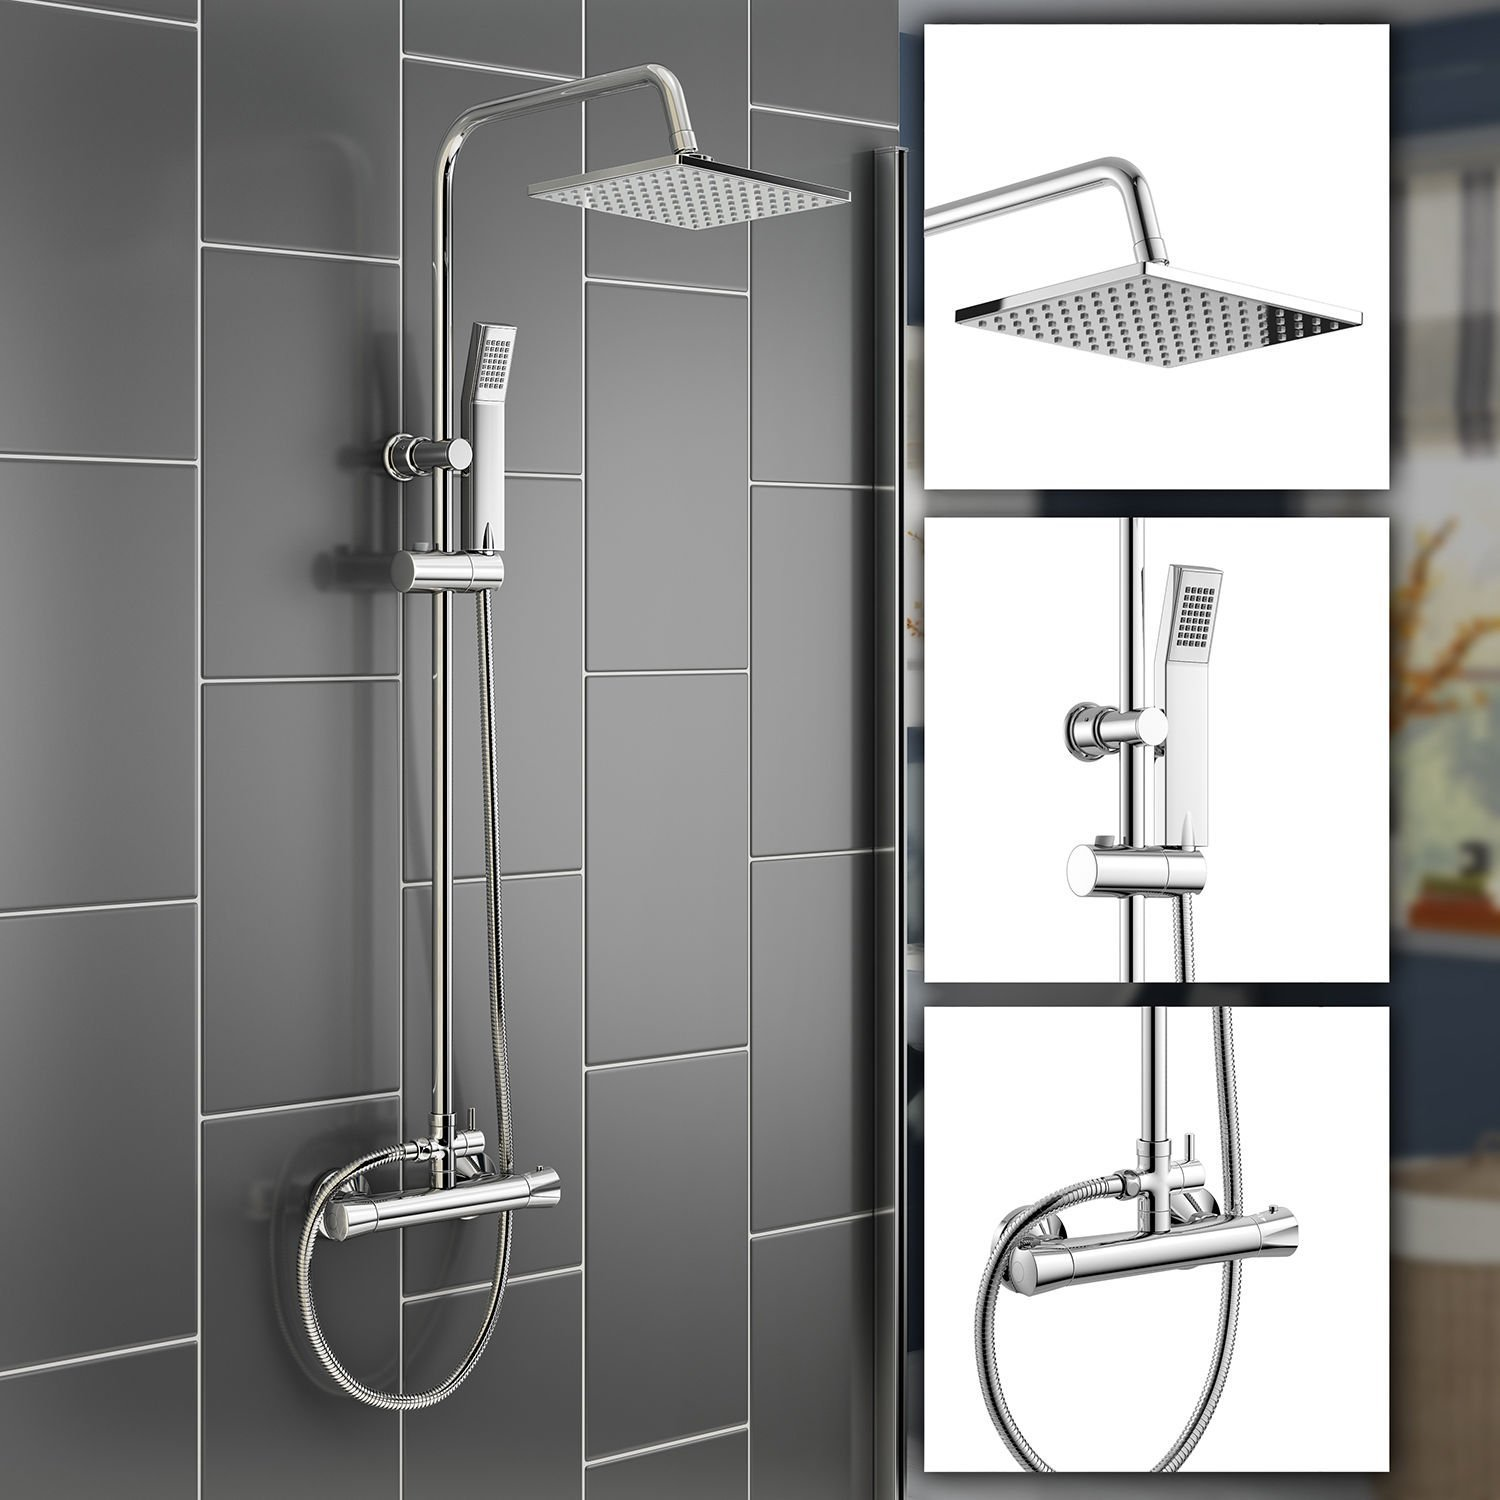 modern shower ideas draining decor showers design master bathroom latest trends on inspired